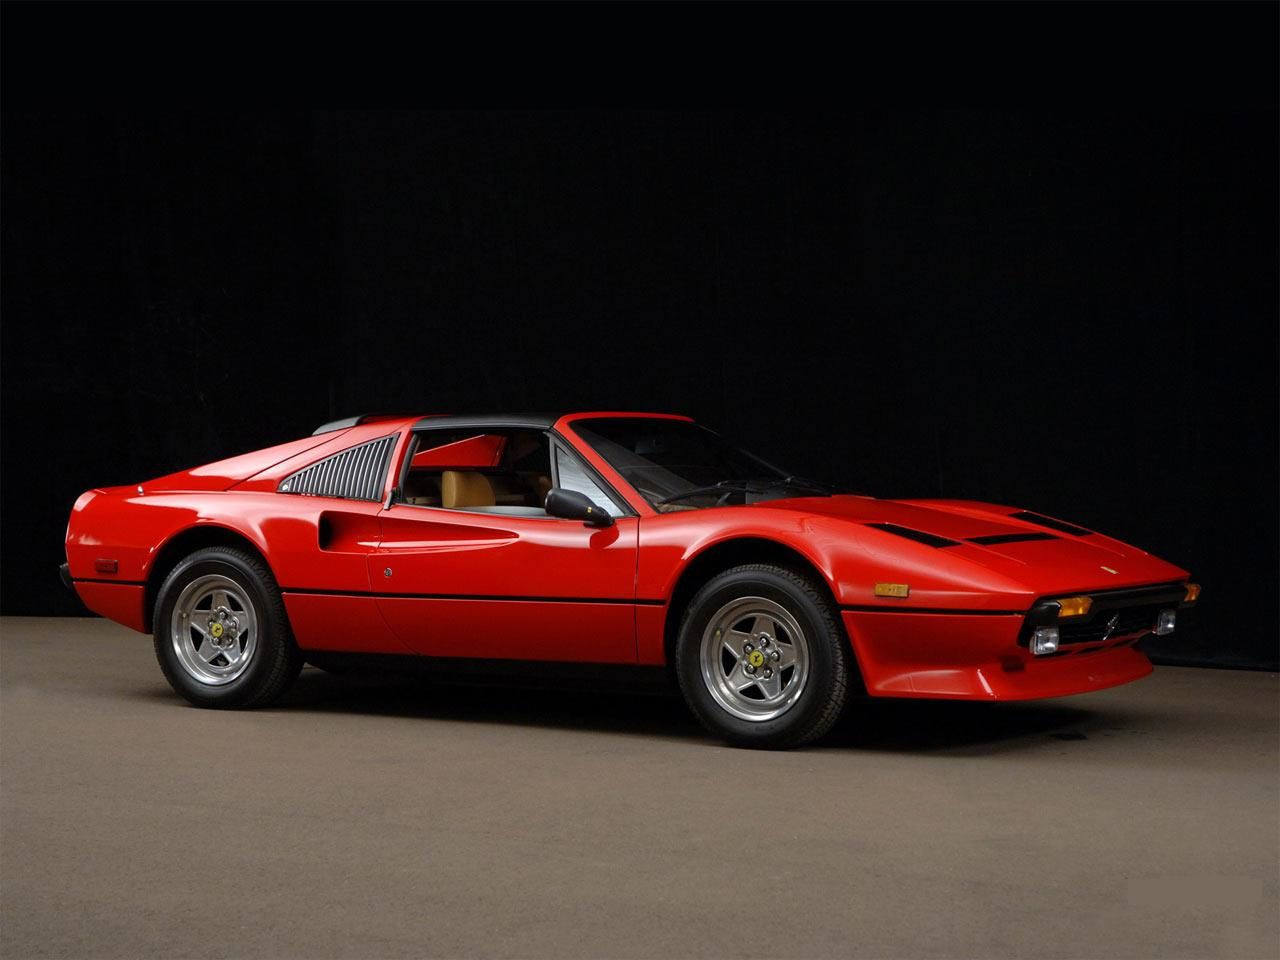 1975 1985 ferrari 308 gtb gts dark cars wallpapers. Black Bedroom Furniture Sets. Home Design Ideas